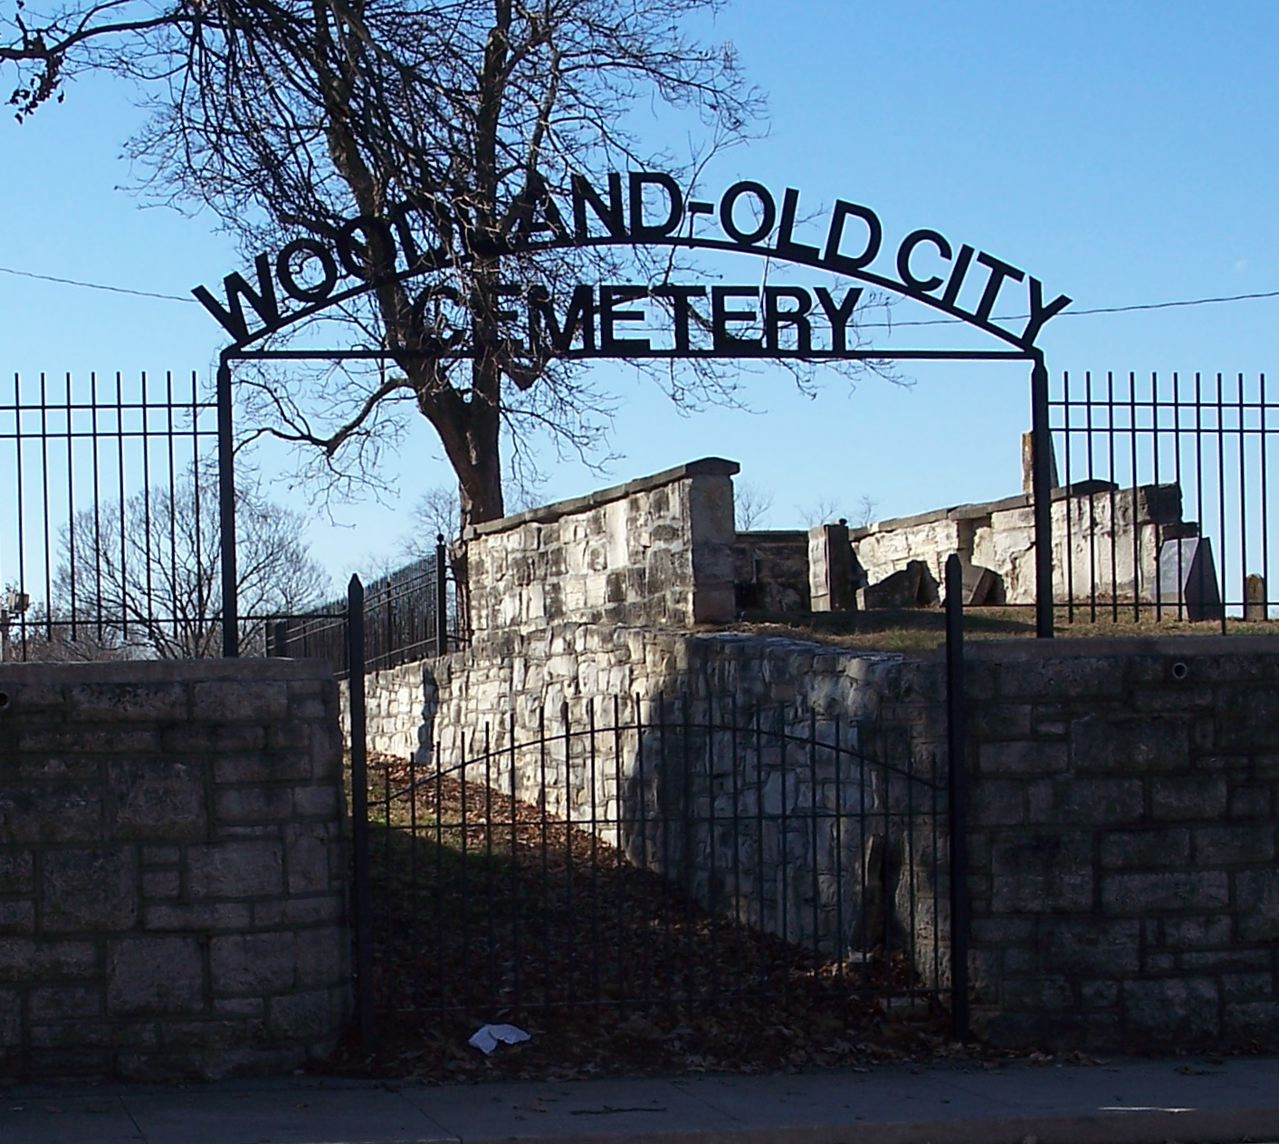 Entrance to Woodland-Old City Cemetery